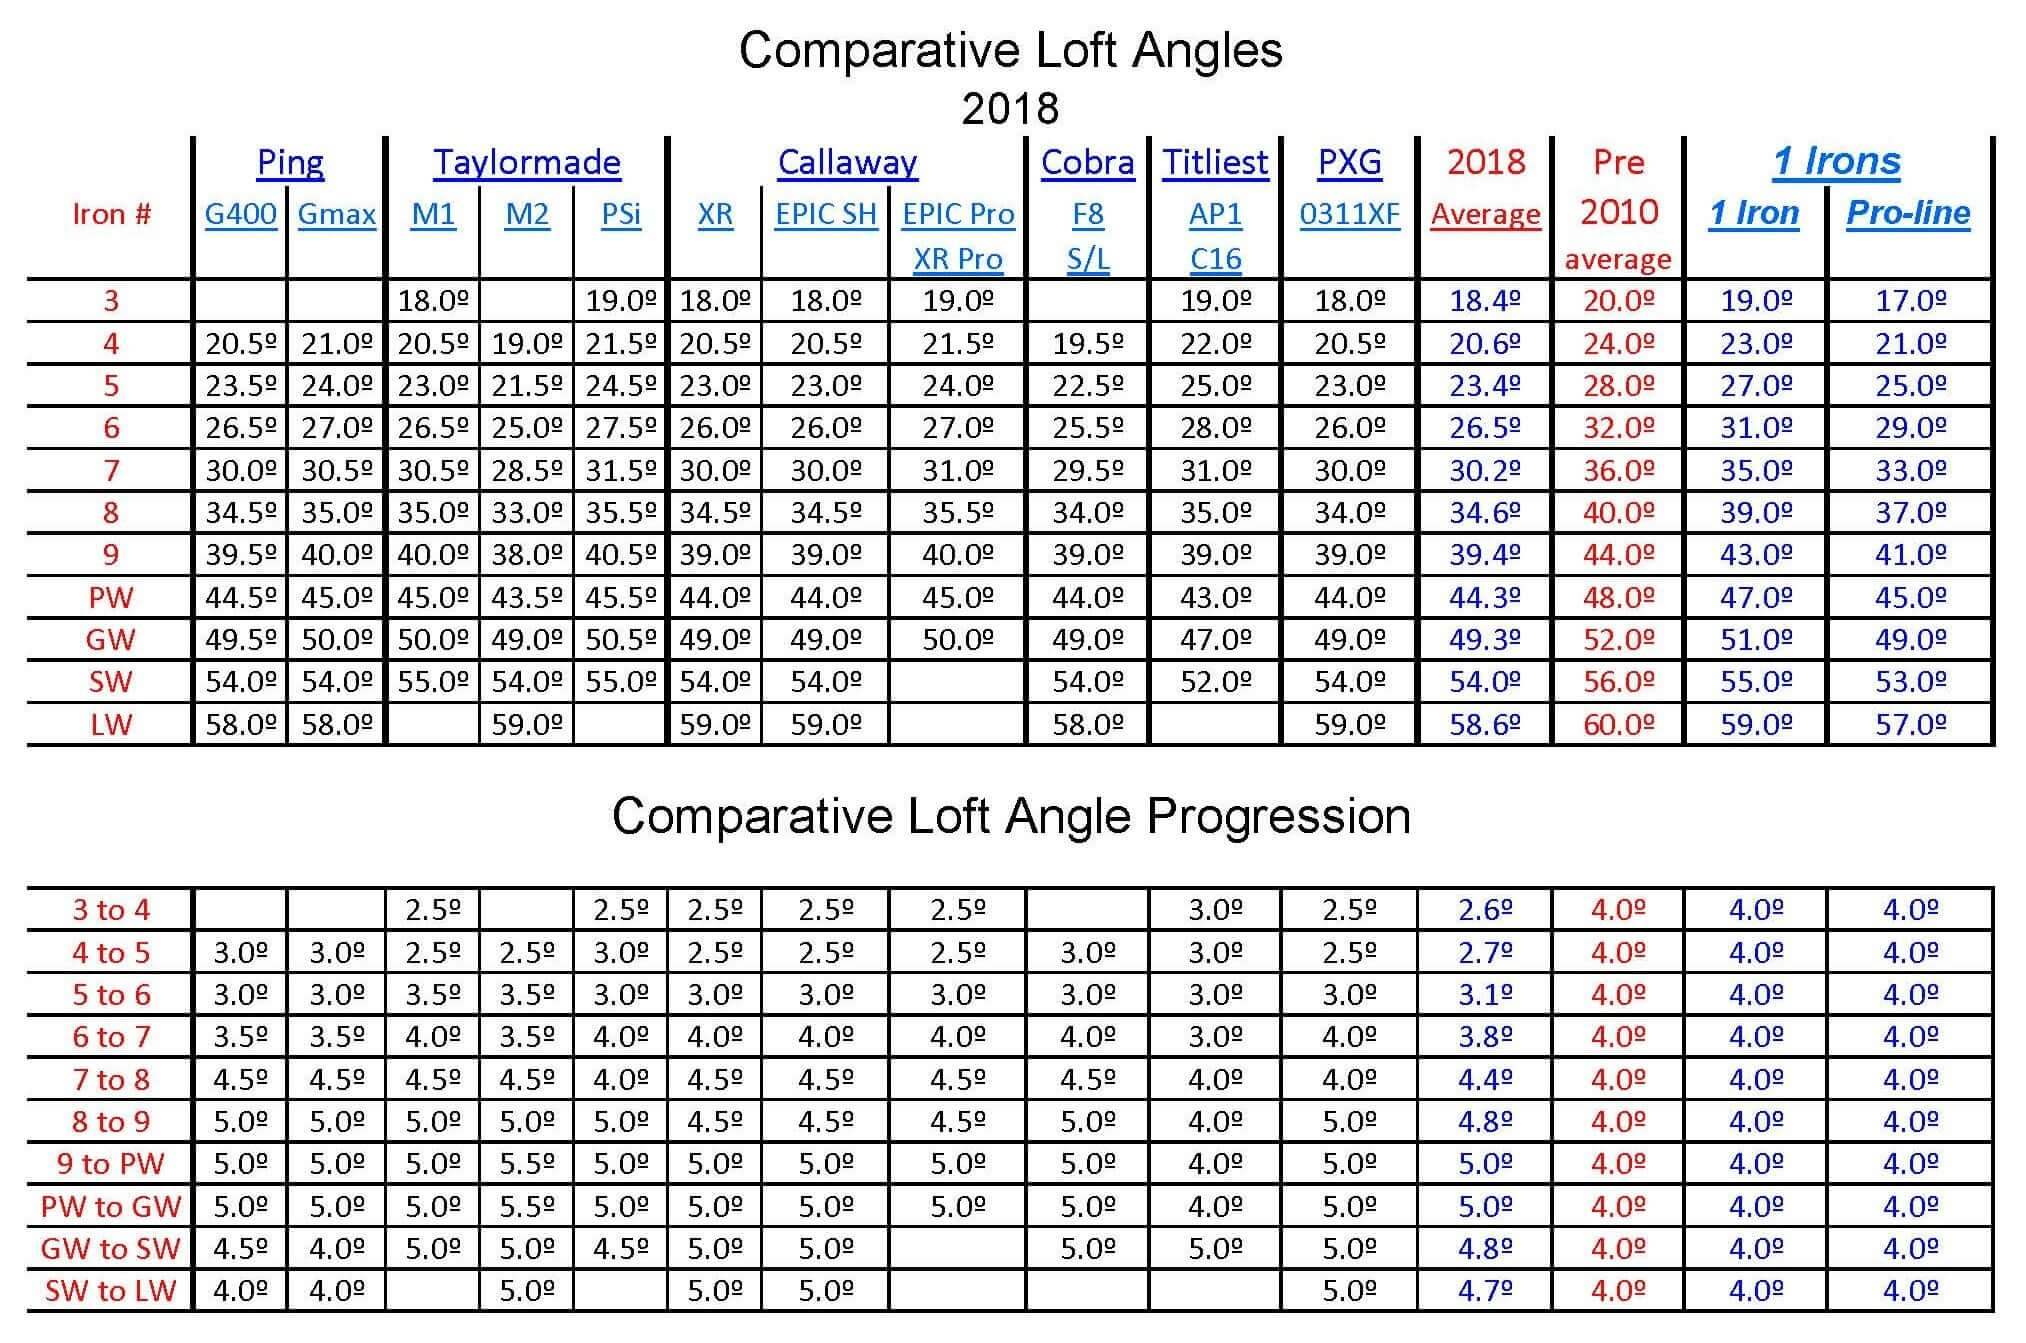 Golf Club loft angle specifications